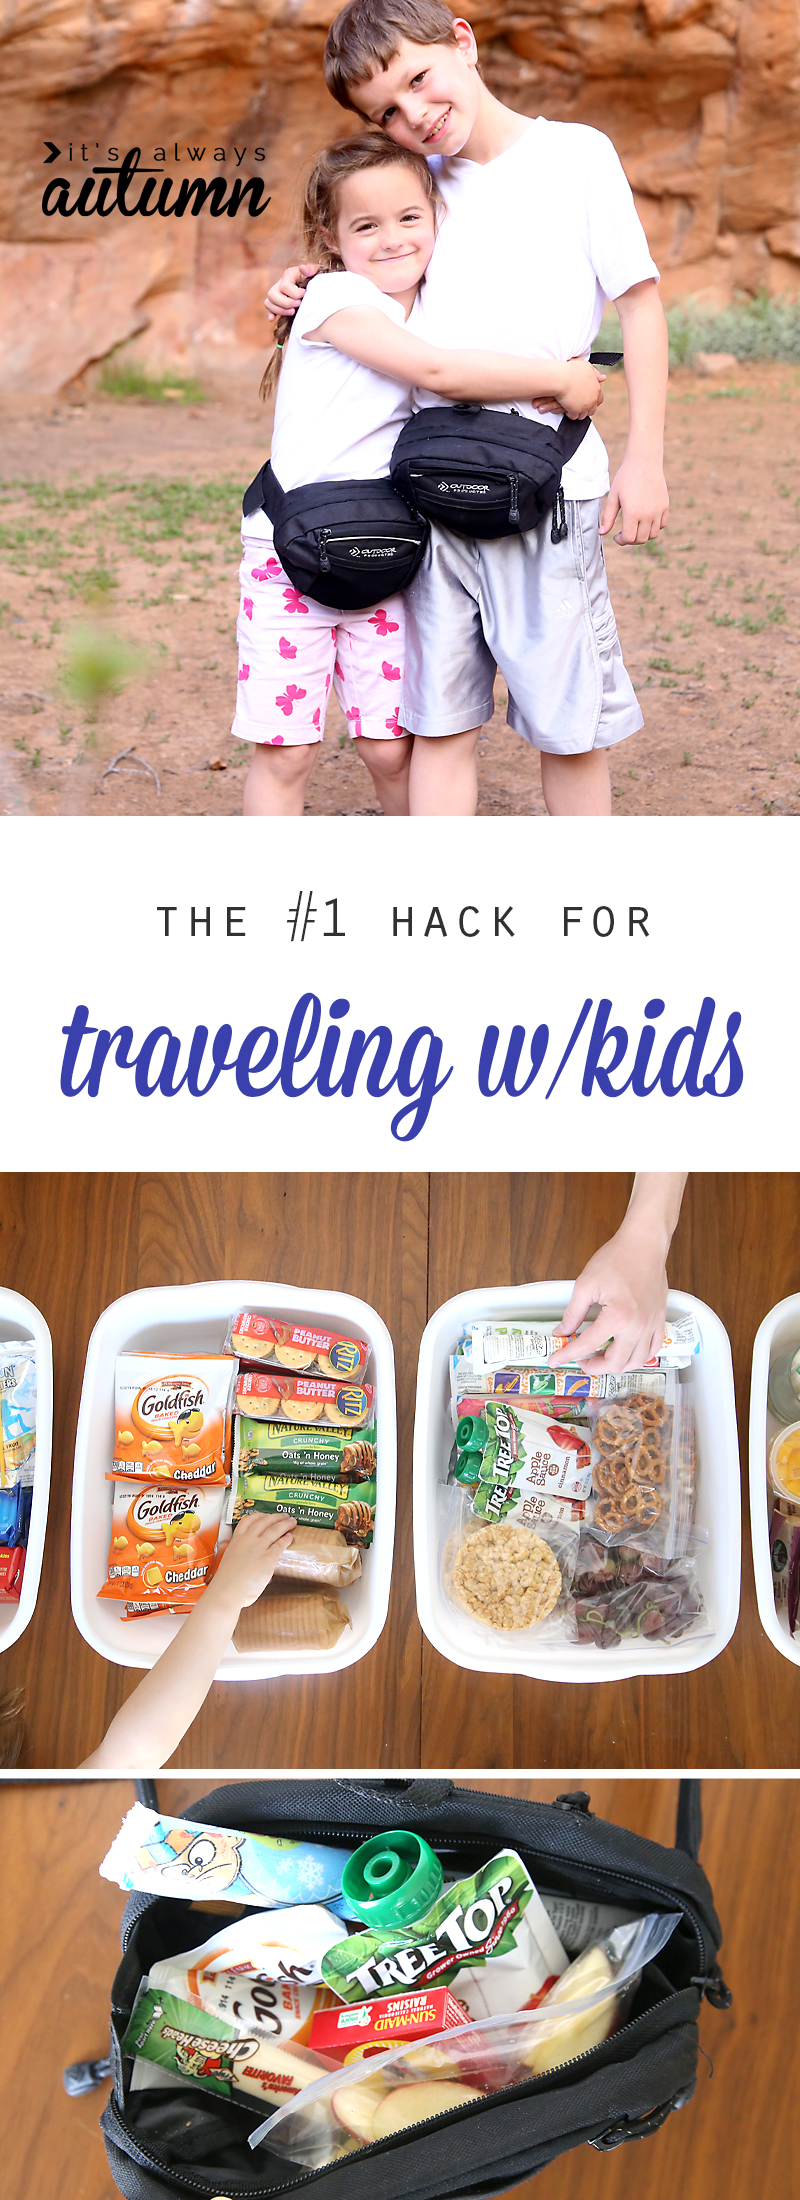 How to save money and keep kids happy on vacation: the number one tip for traveling with kids. This really works!